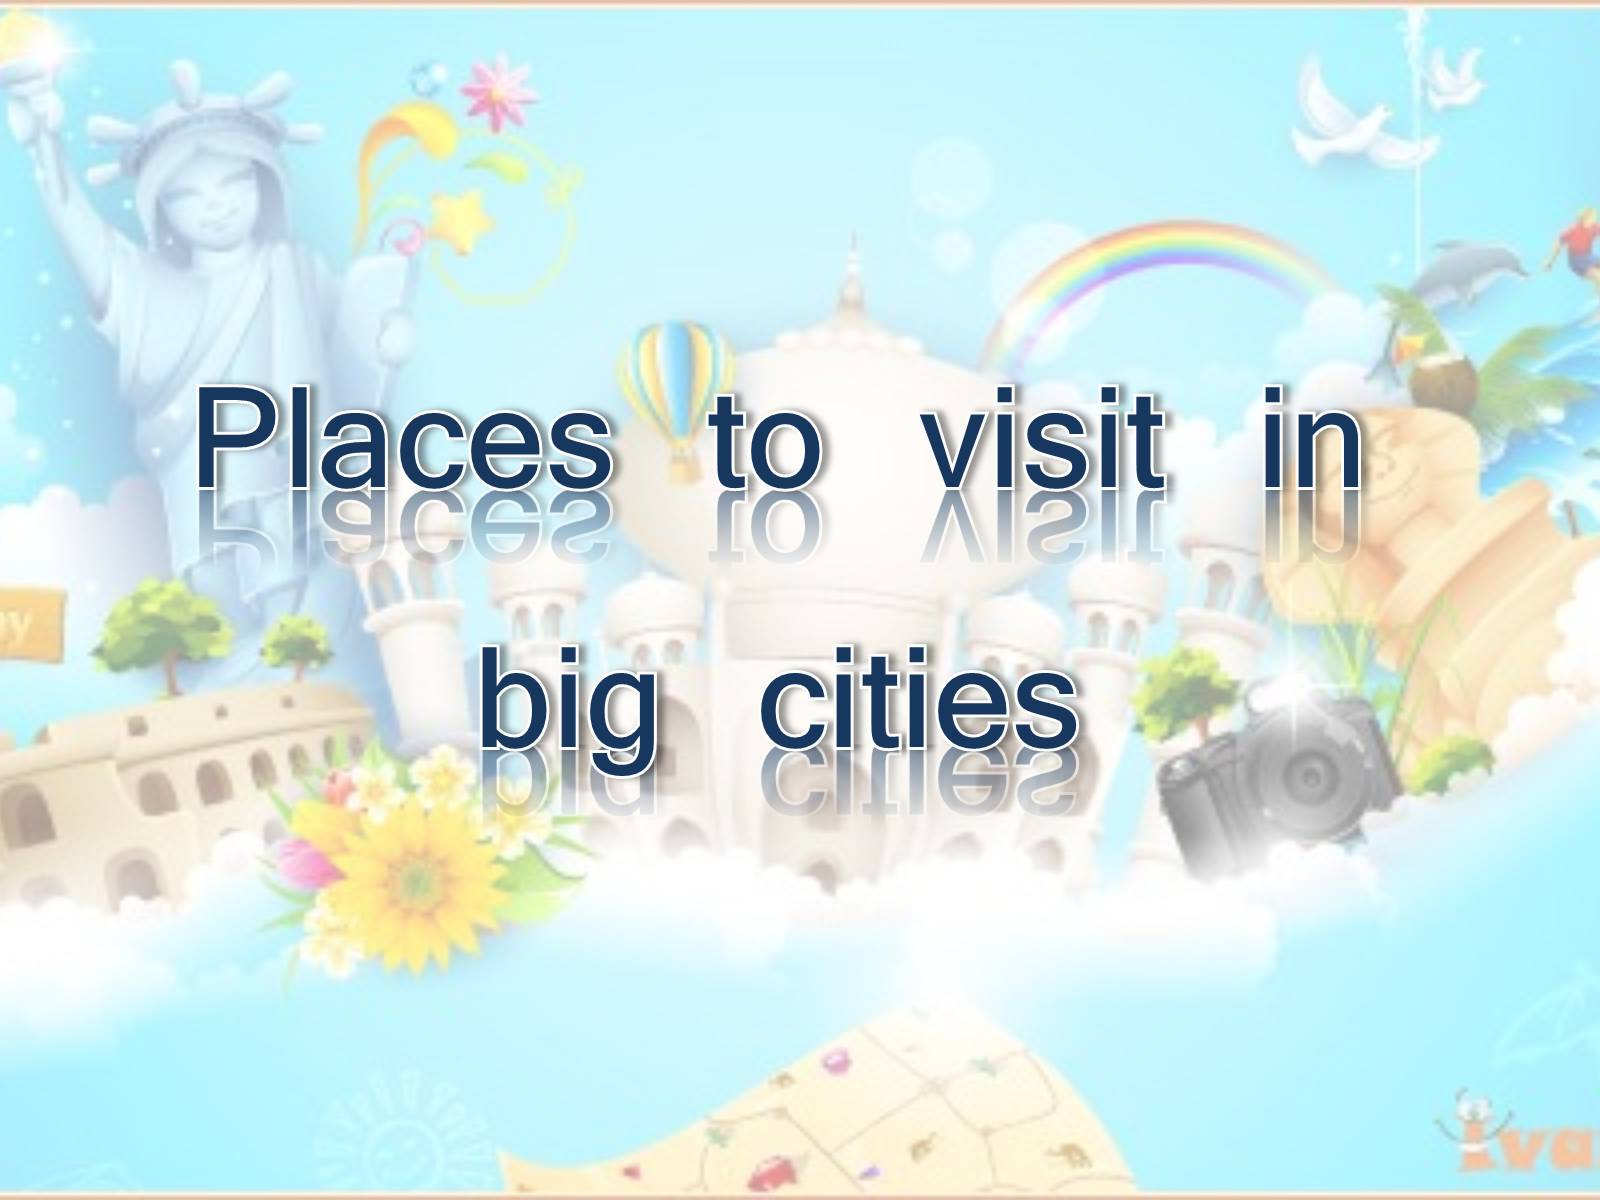 Презентація на тему «Places to visit in big citie»